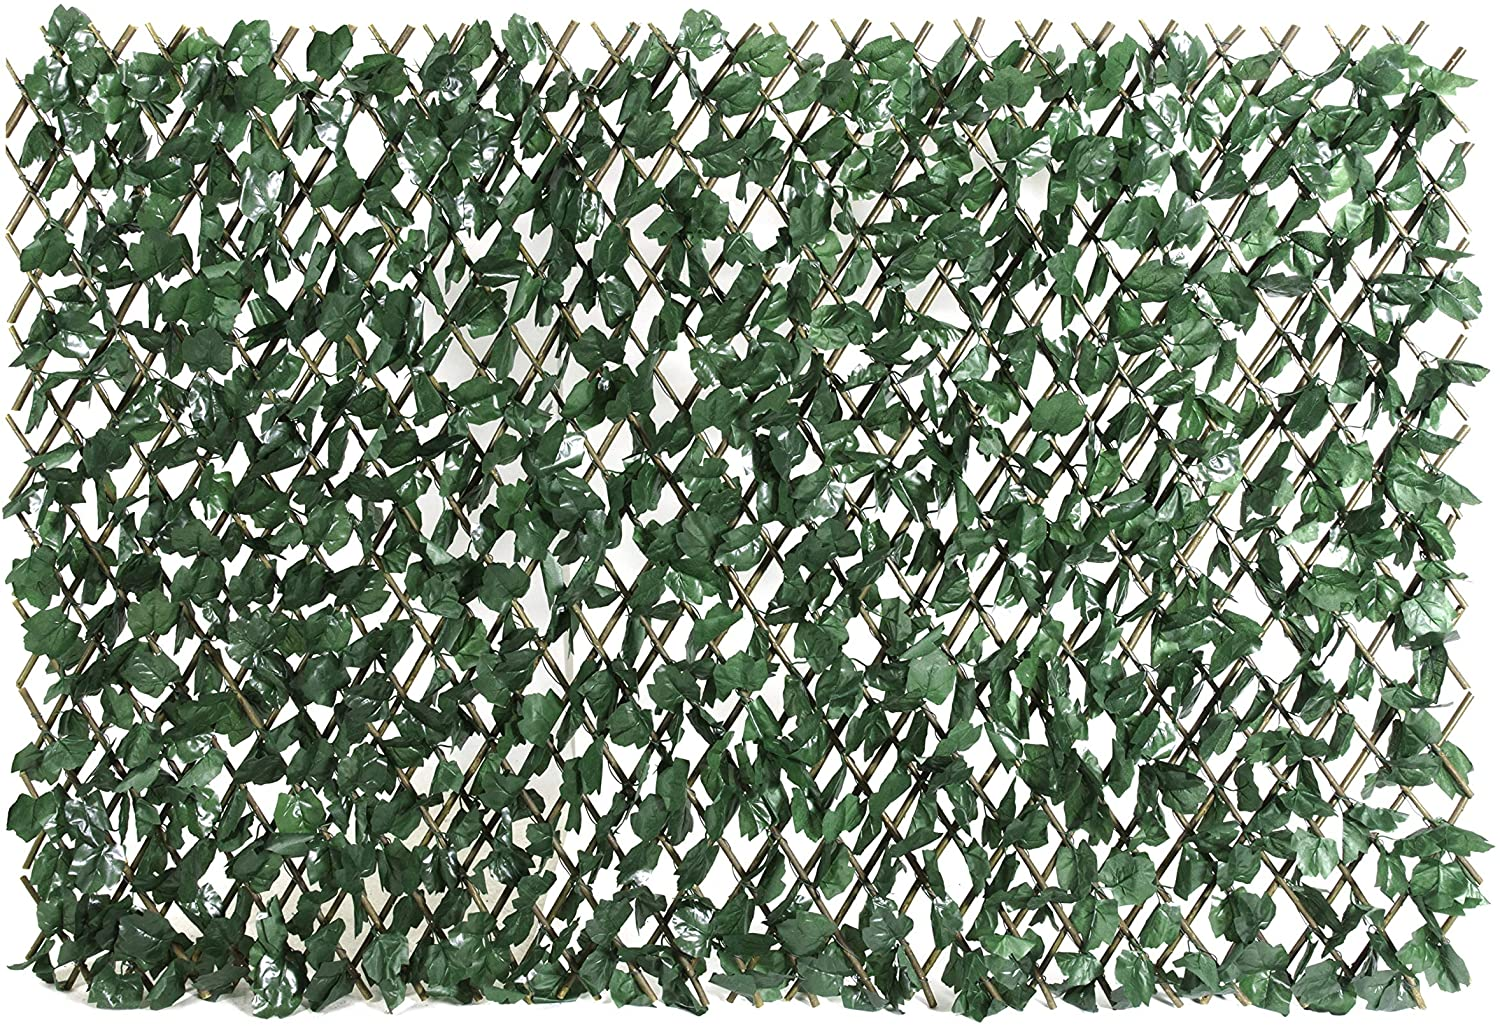 ColourTree Expandable Rectractable Faux Artificial Ivy Trellis Hedge Fence  Screen Privacy Wall Screen   Commercial Grade 20 GSM   Heavy Duty   20 ...